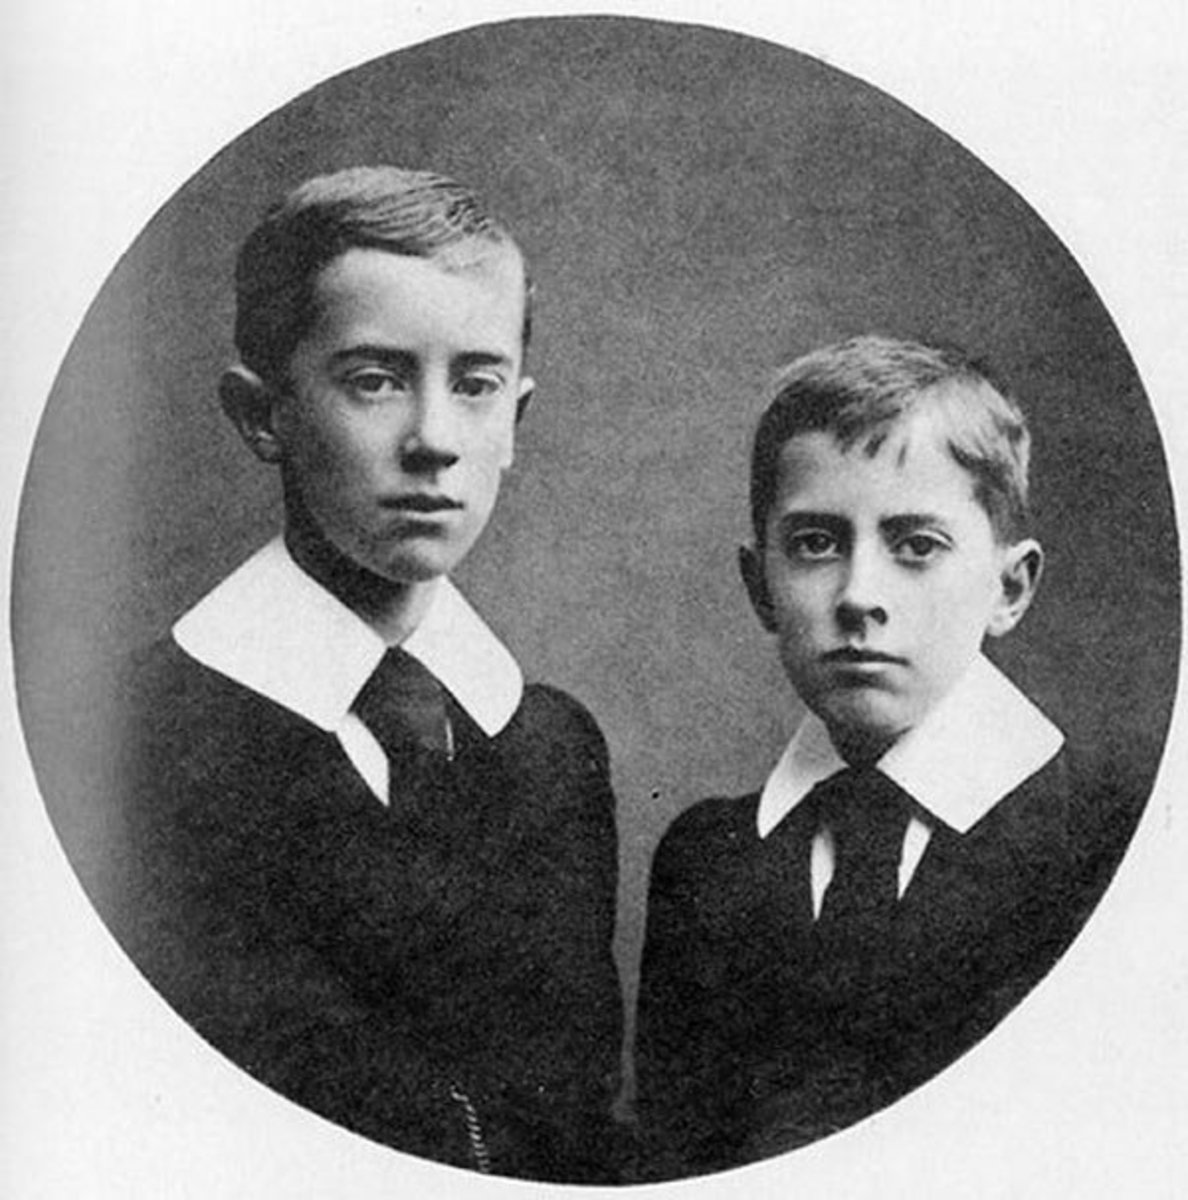 J.R.R. Tolkien and his younger brother Hilary.